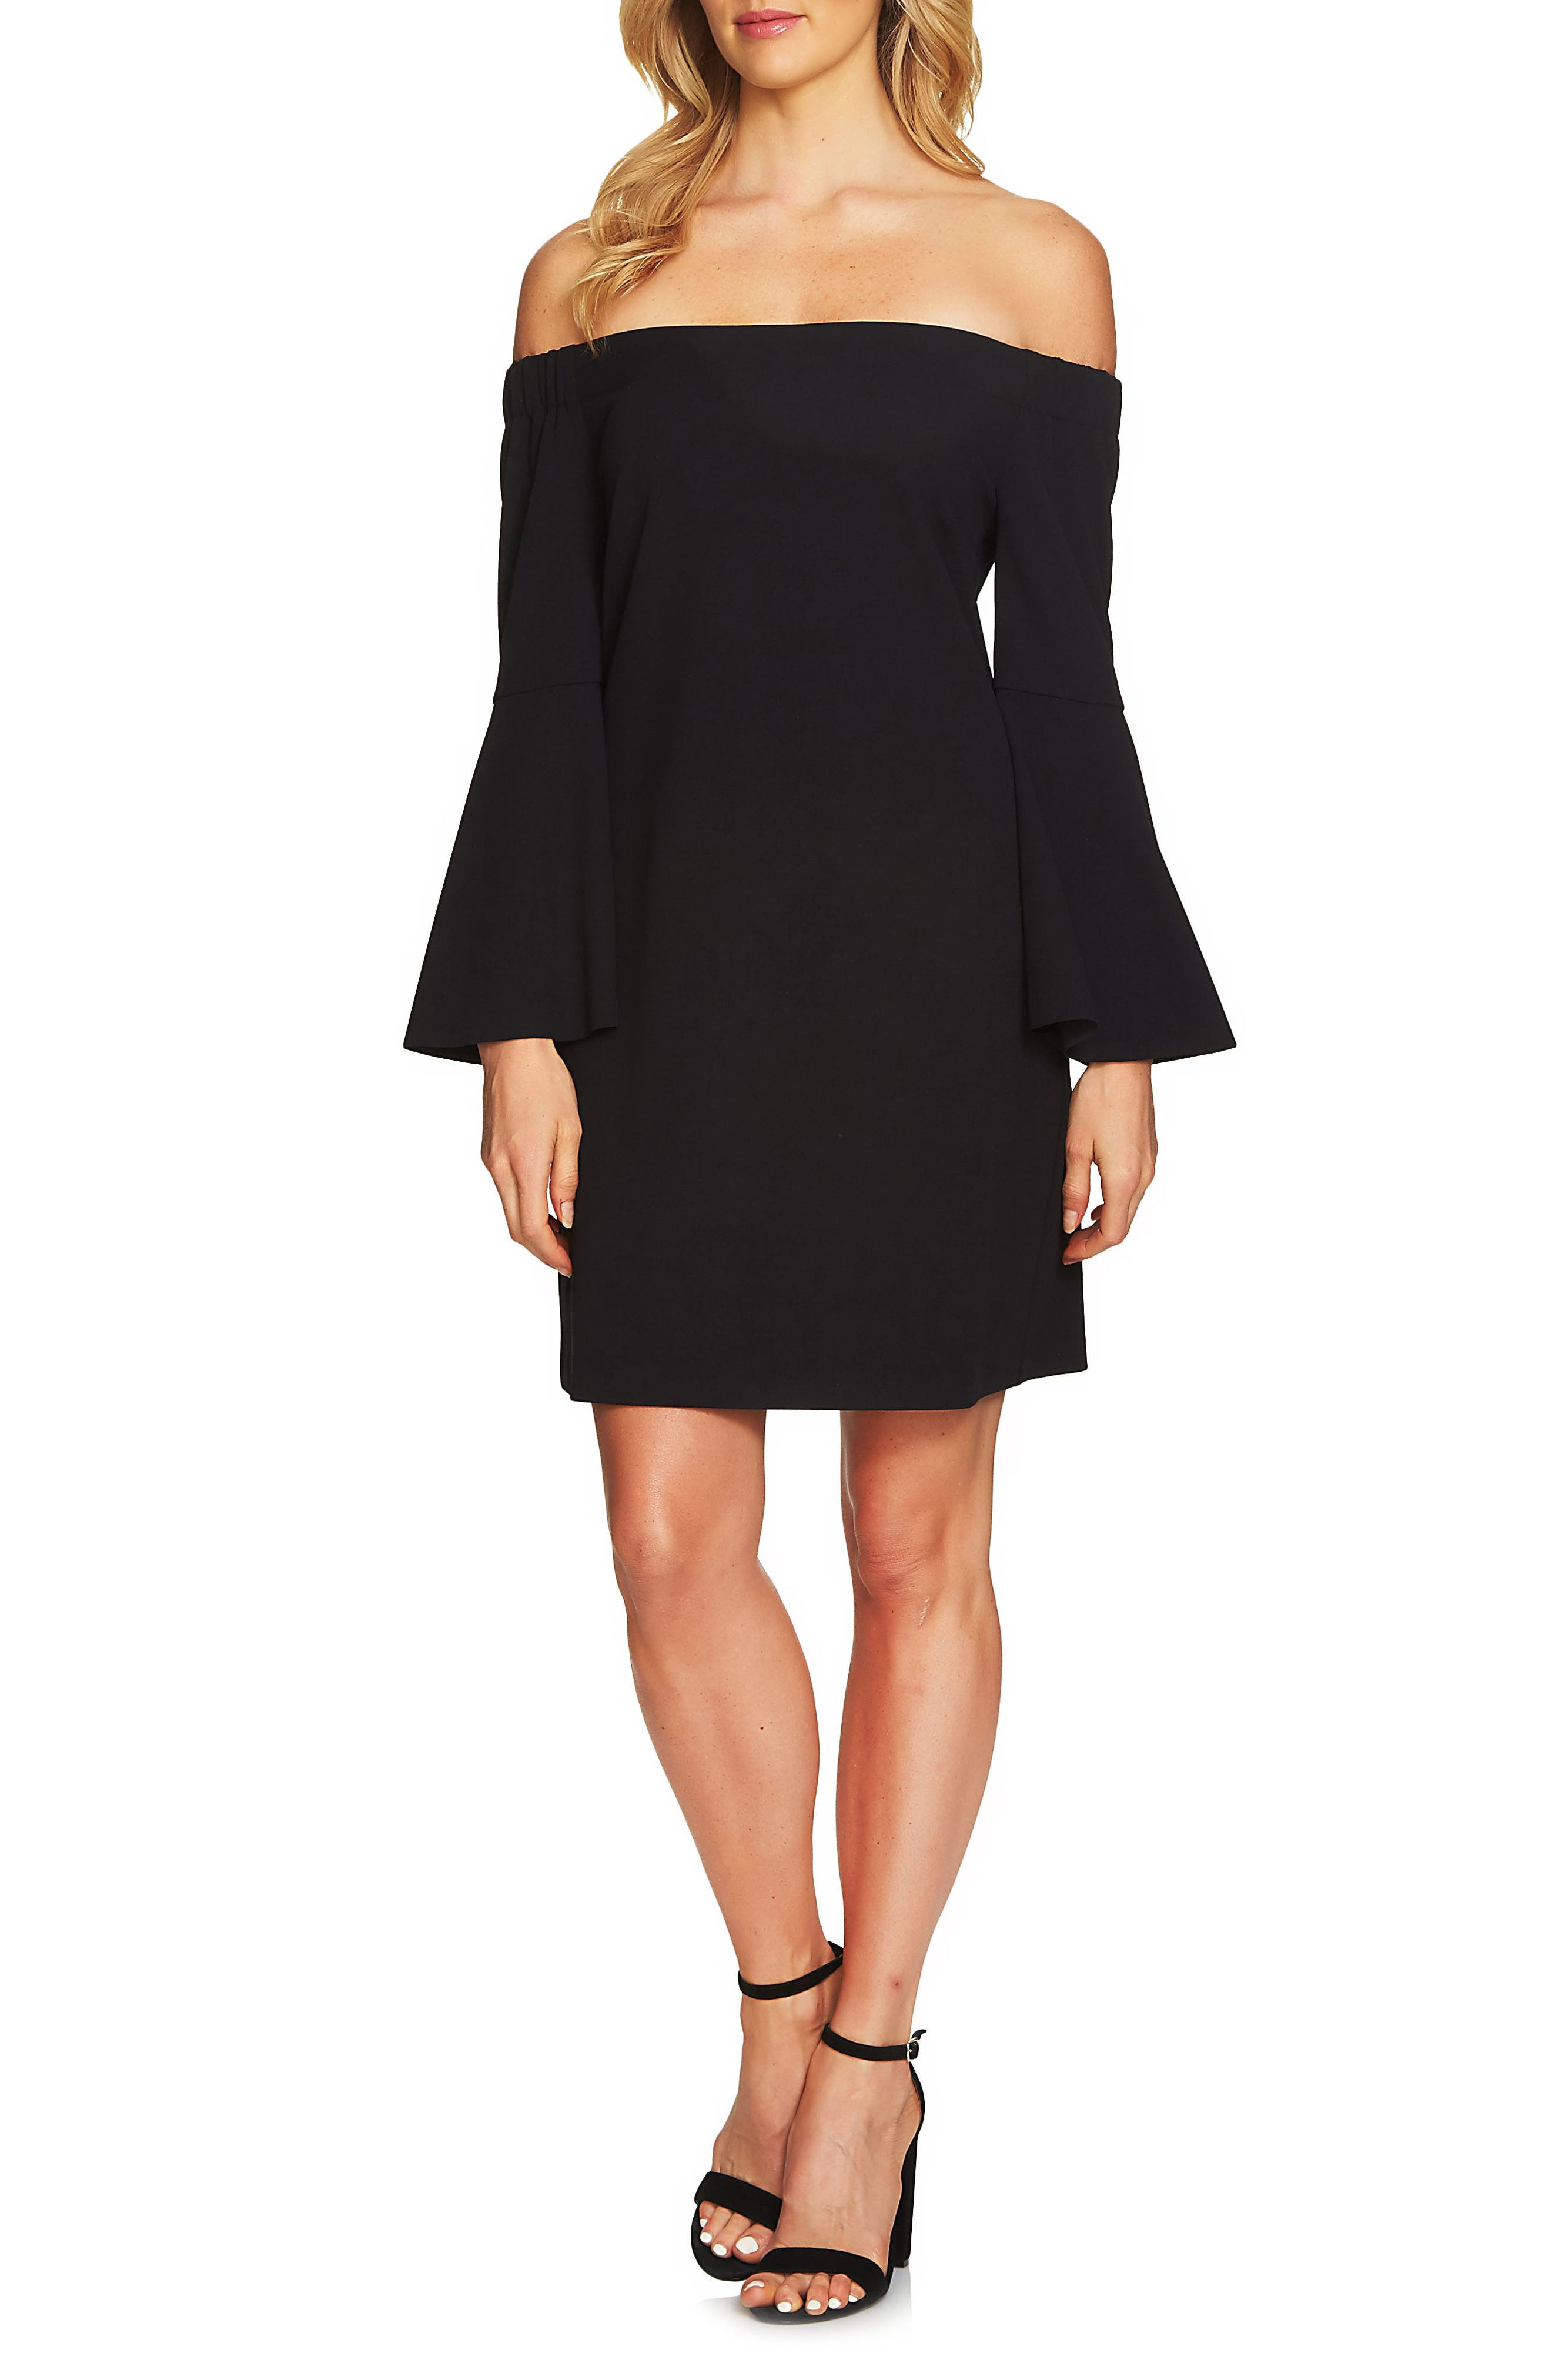 Hadley Off the Shoulder Shift Dress,                             Main thumbnail 1, color,                             Rich Black